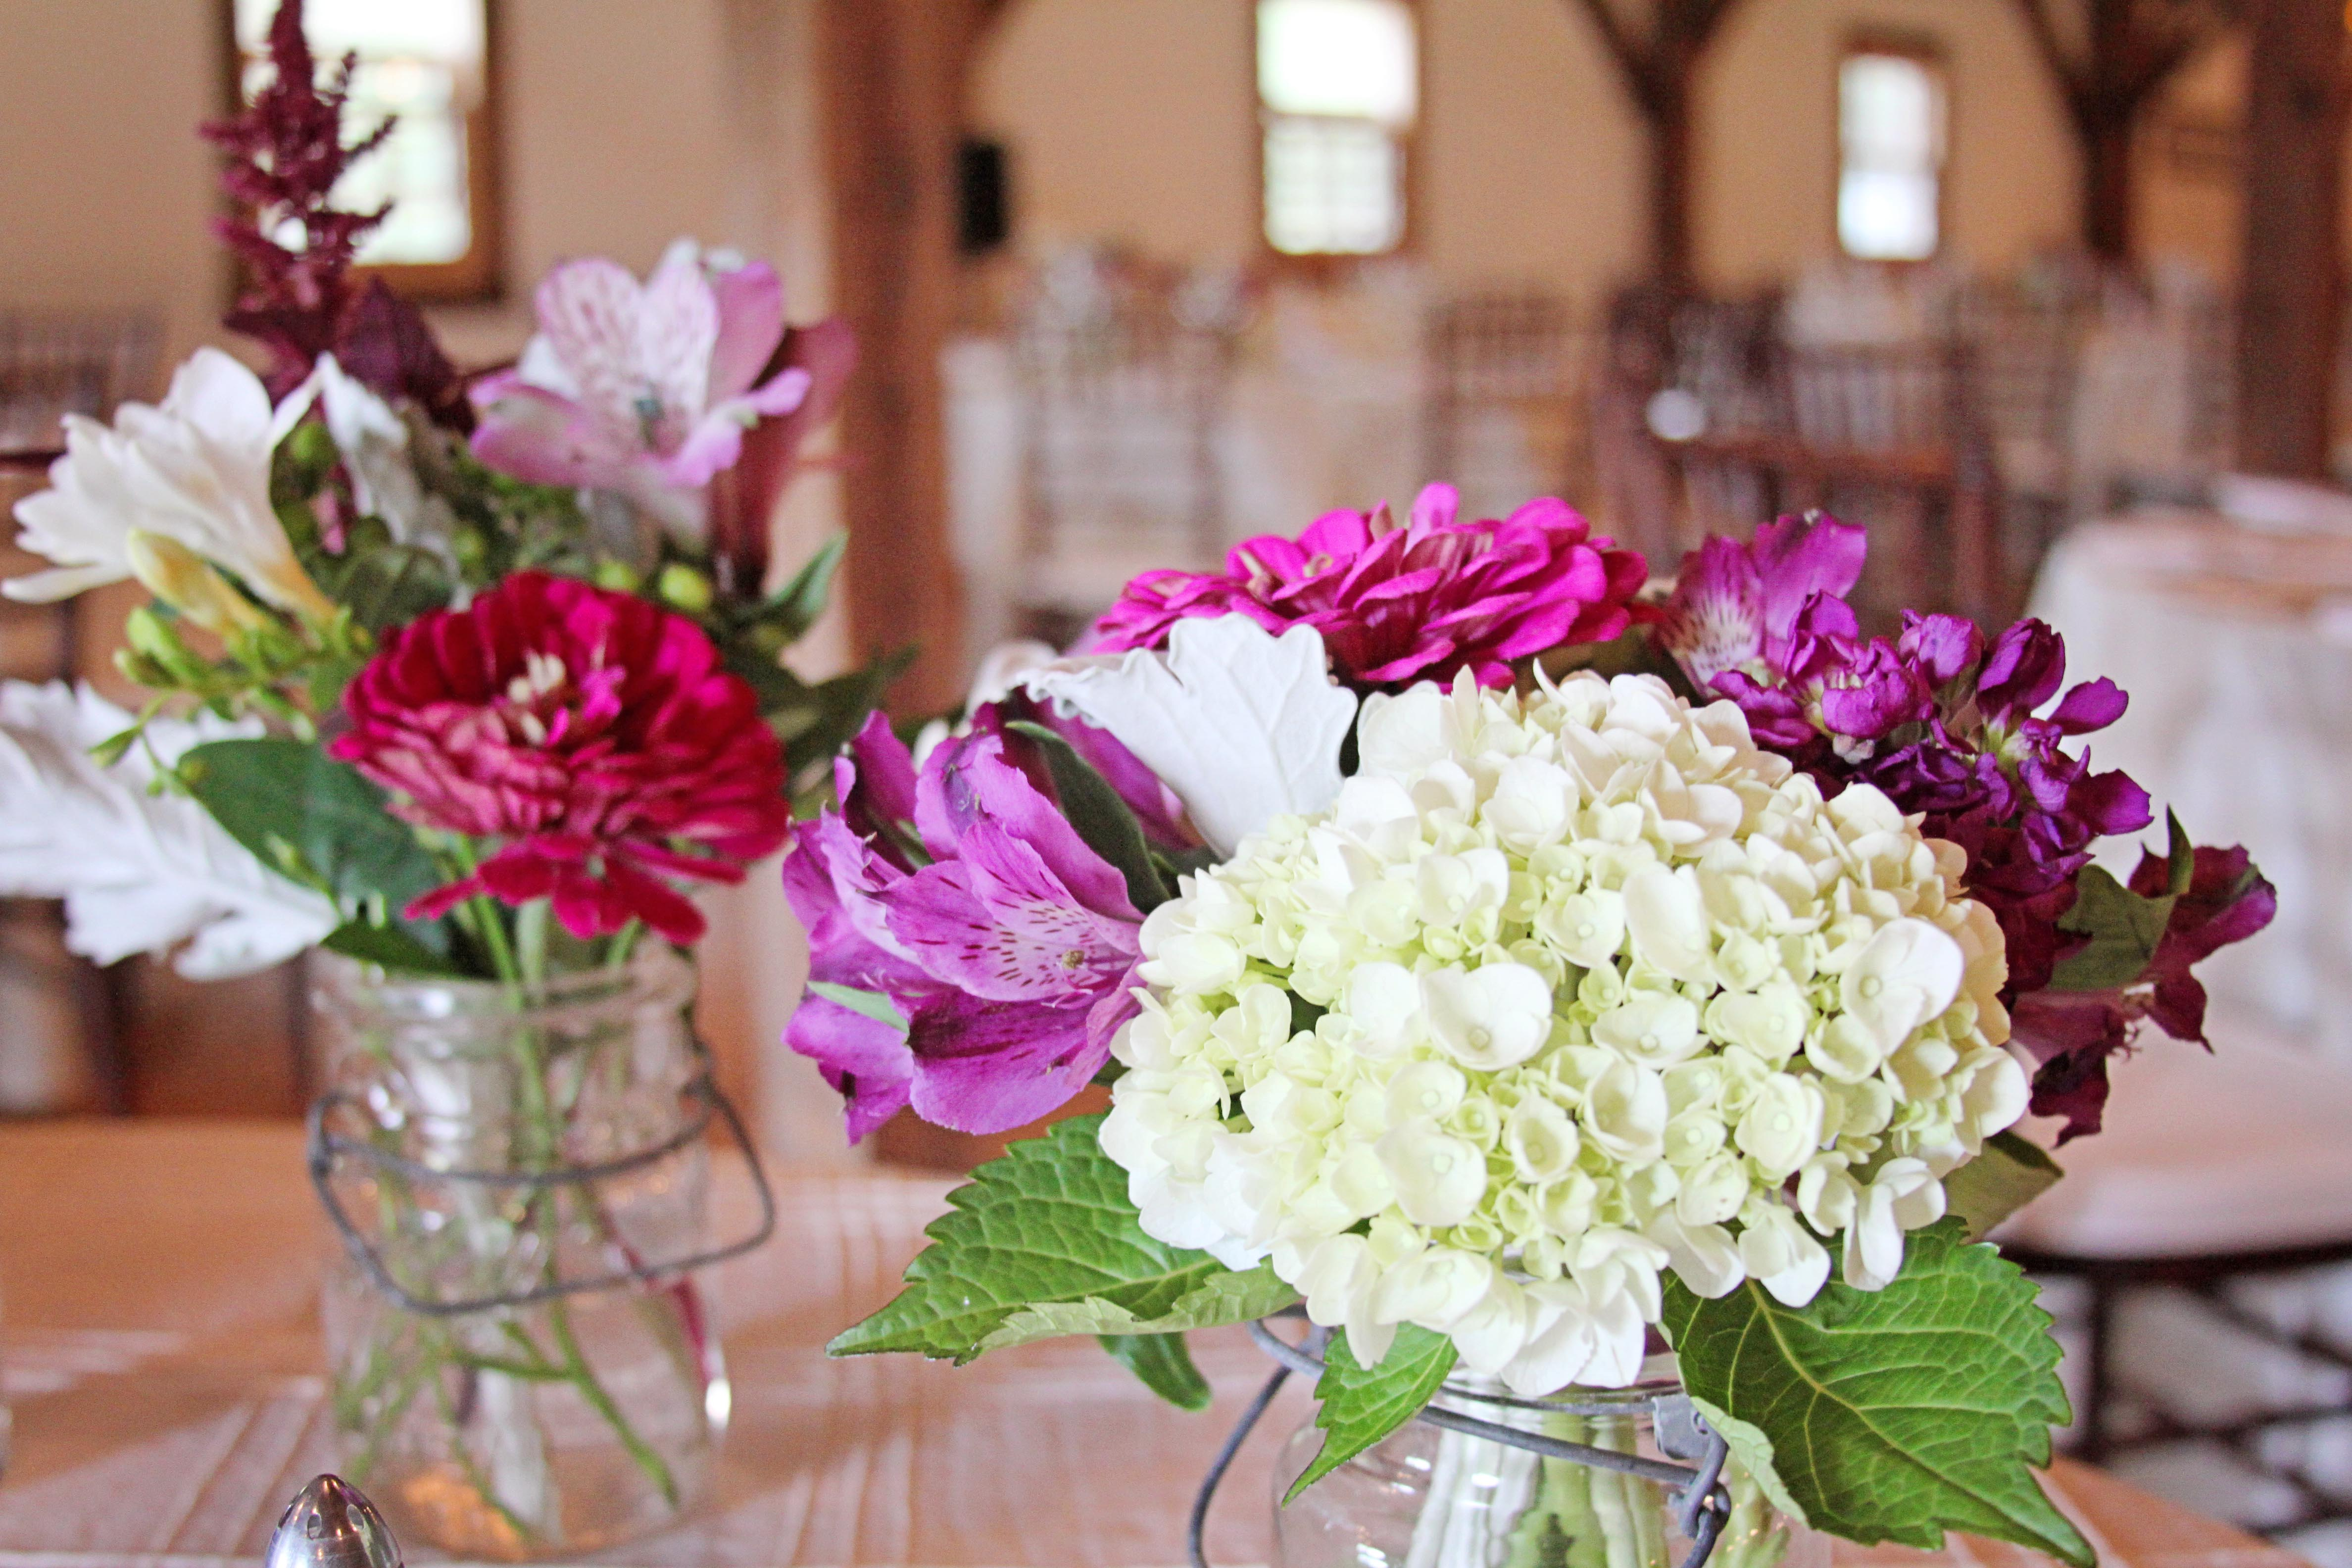 Riverside Farm Vermont Wedding Detail - flowers by Pittsfield Garden Center